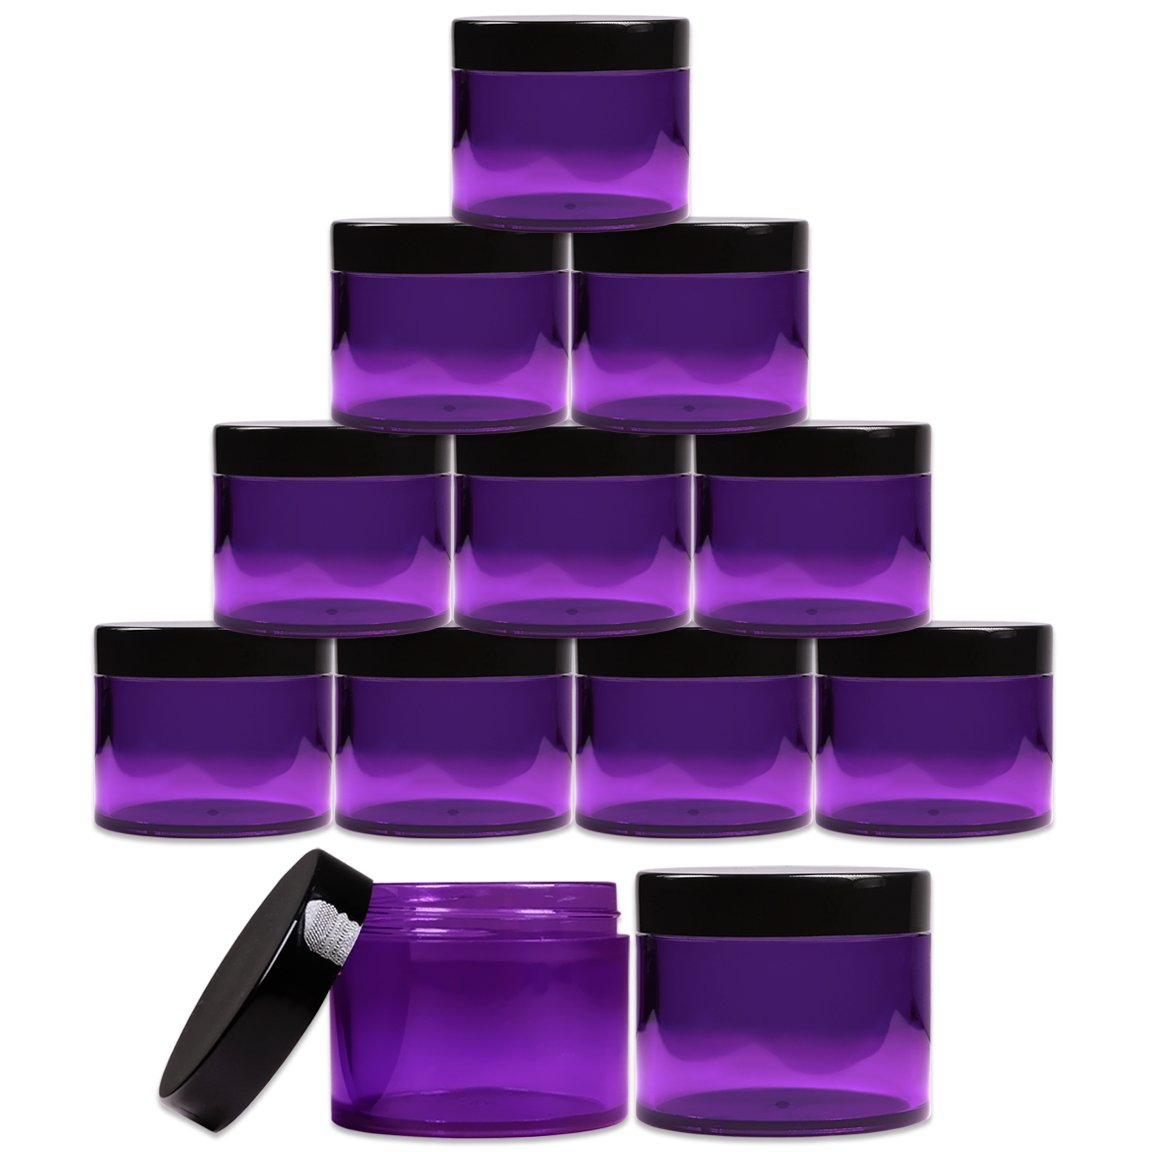 Beauticom 2 oz. 60g 60ML Quantity 12 Packs Thick Wall Round Leak Proof PURPLE CLEAR Acrylic Jars with BLACK Lids for Beauty, Cream, Cosmetics, Salves, Scrubs